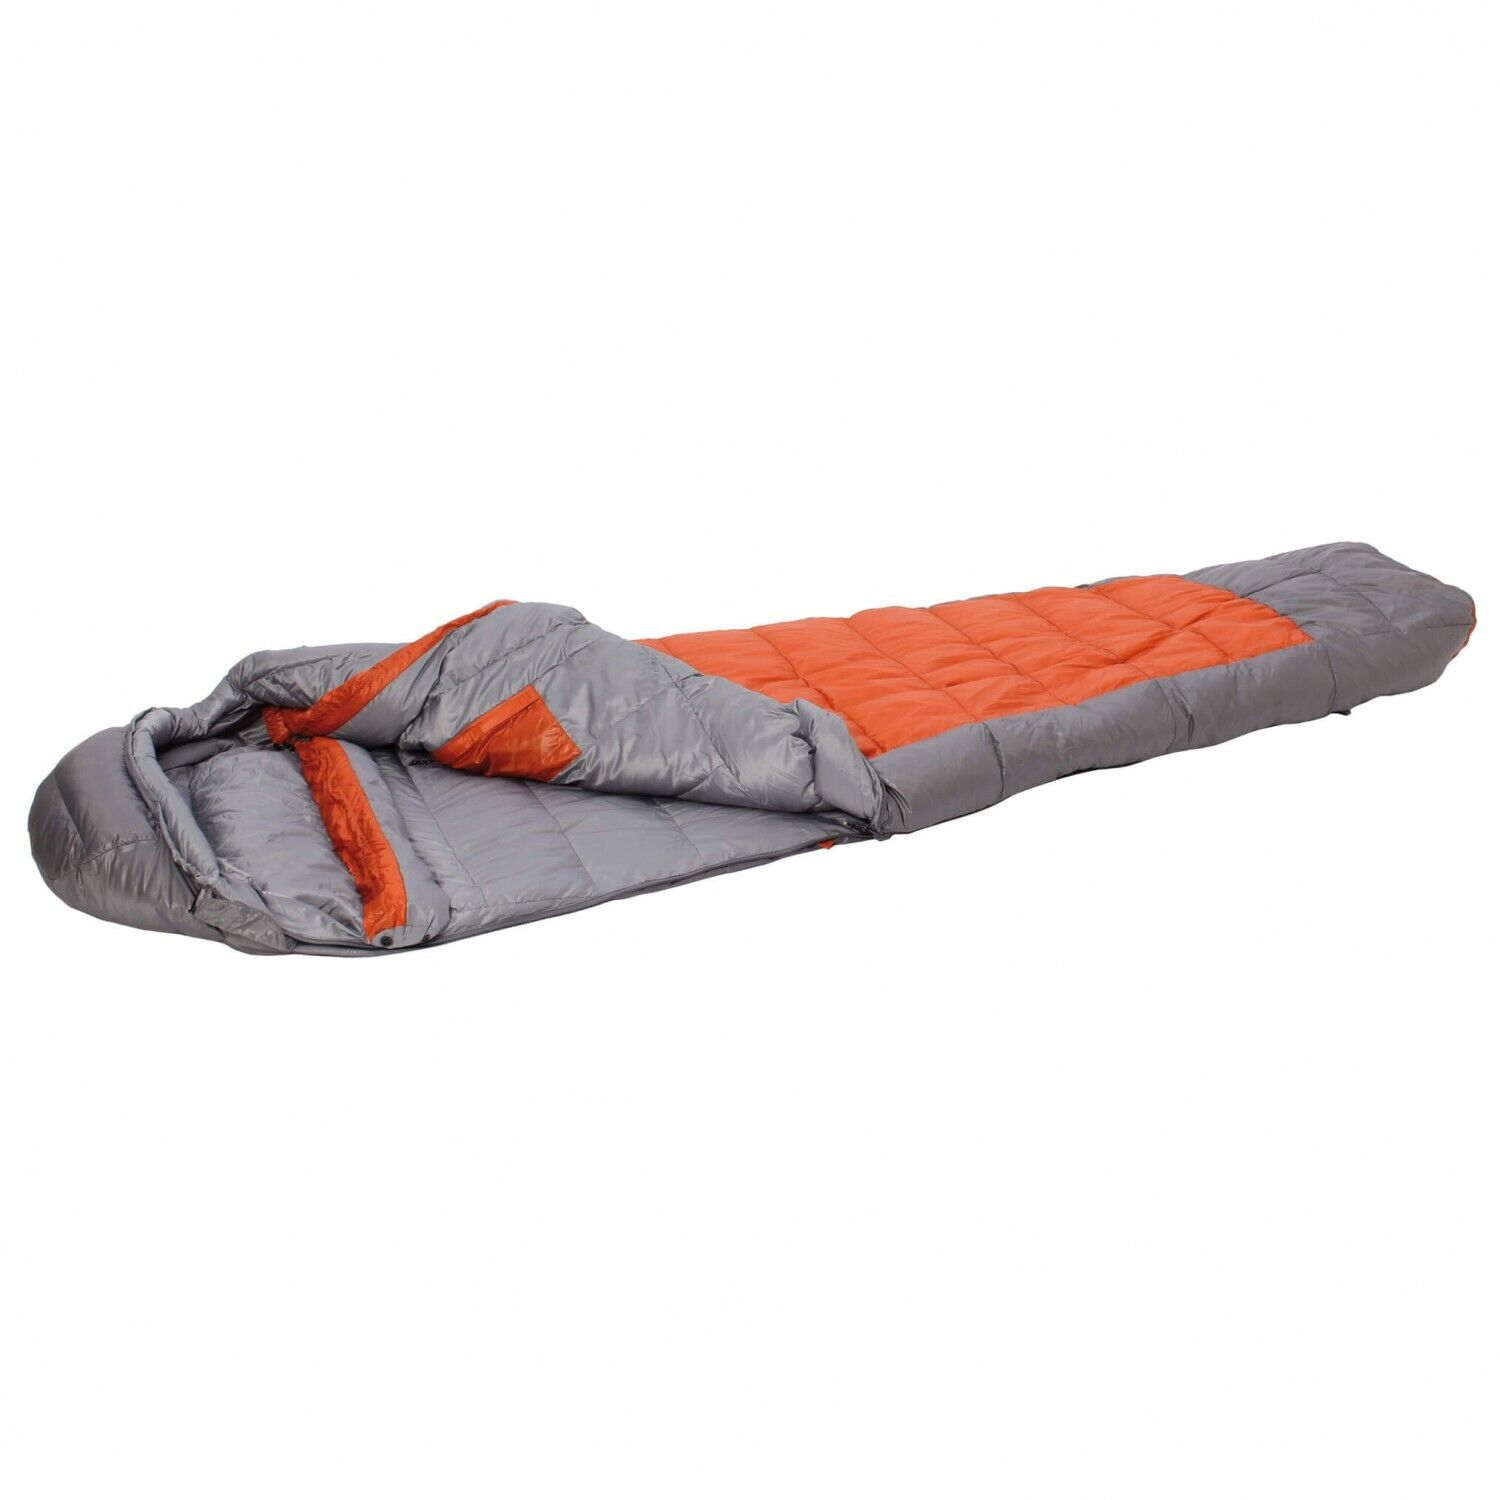 EXPED Lite 300 M Right Sleeping Bag Backpacking Camping 3 Season 800 Down Fill